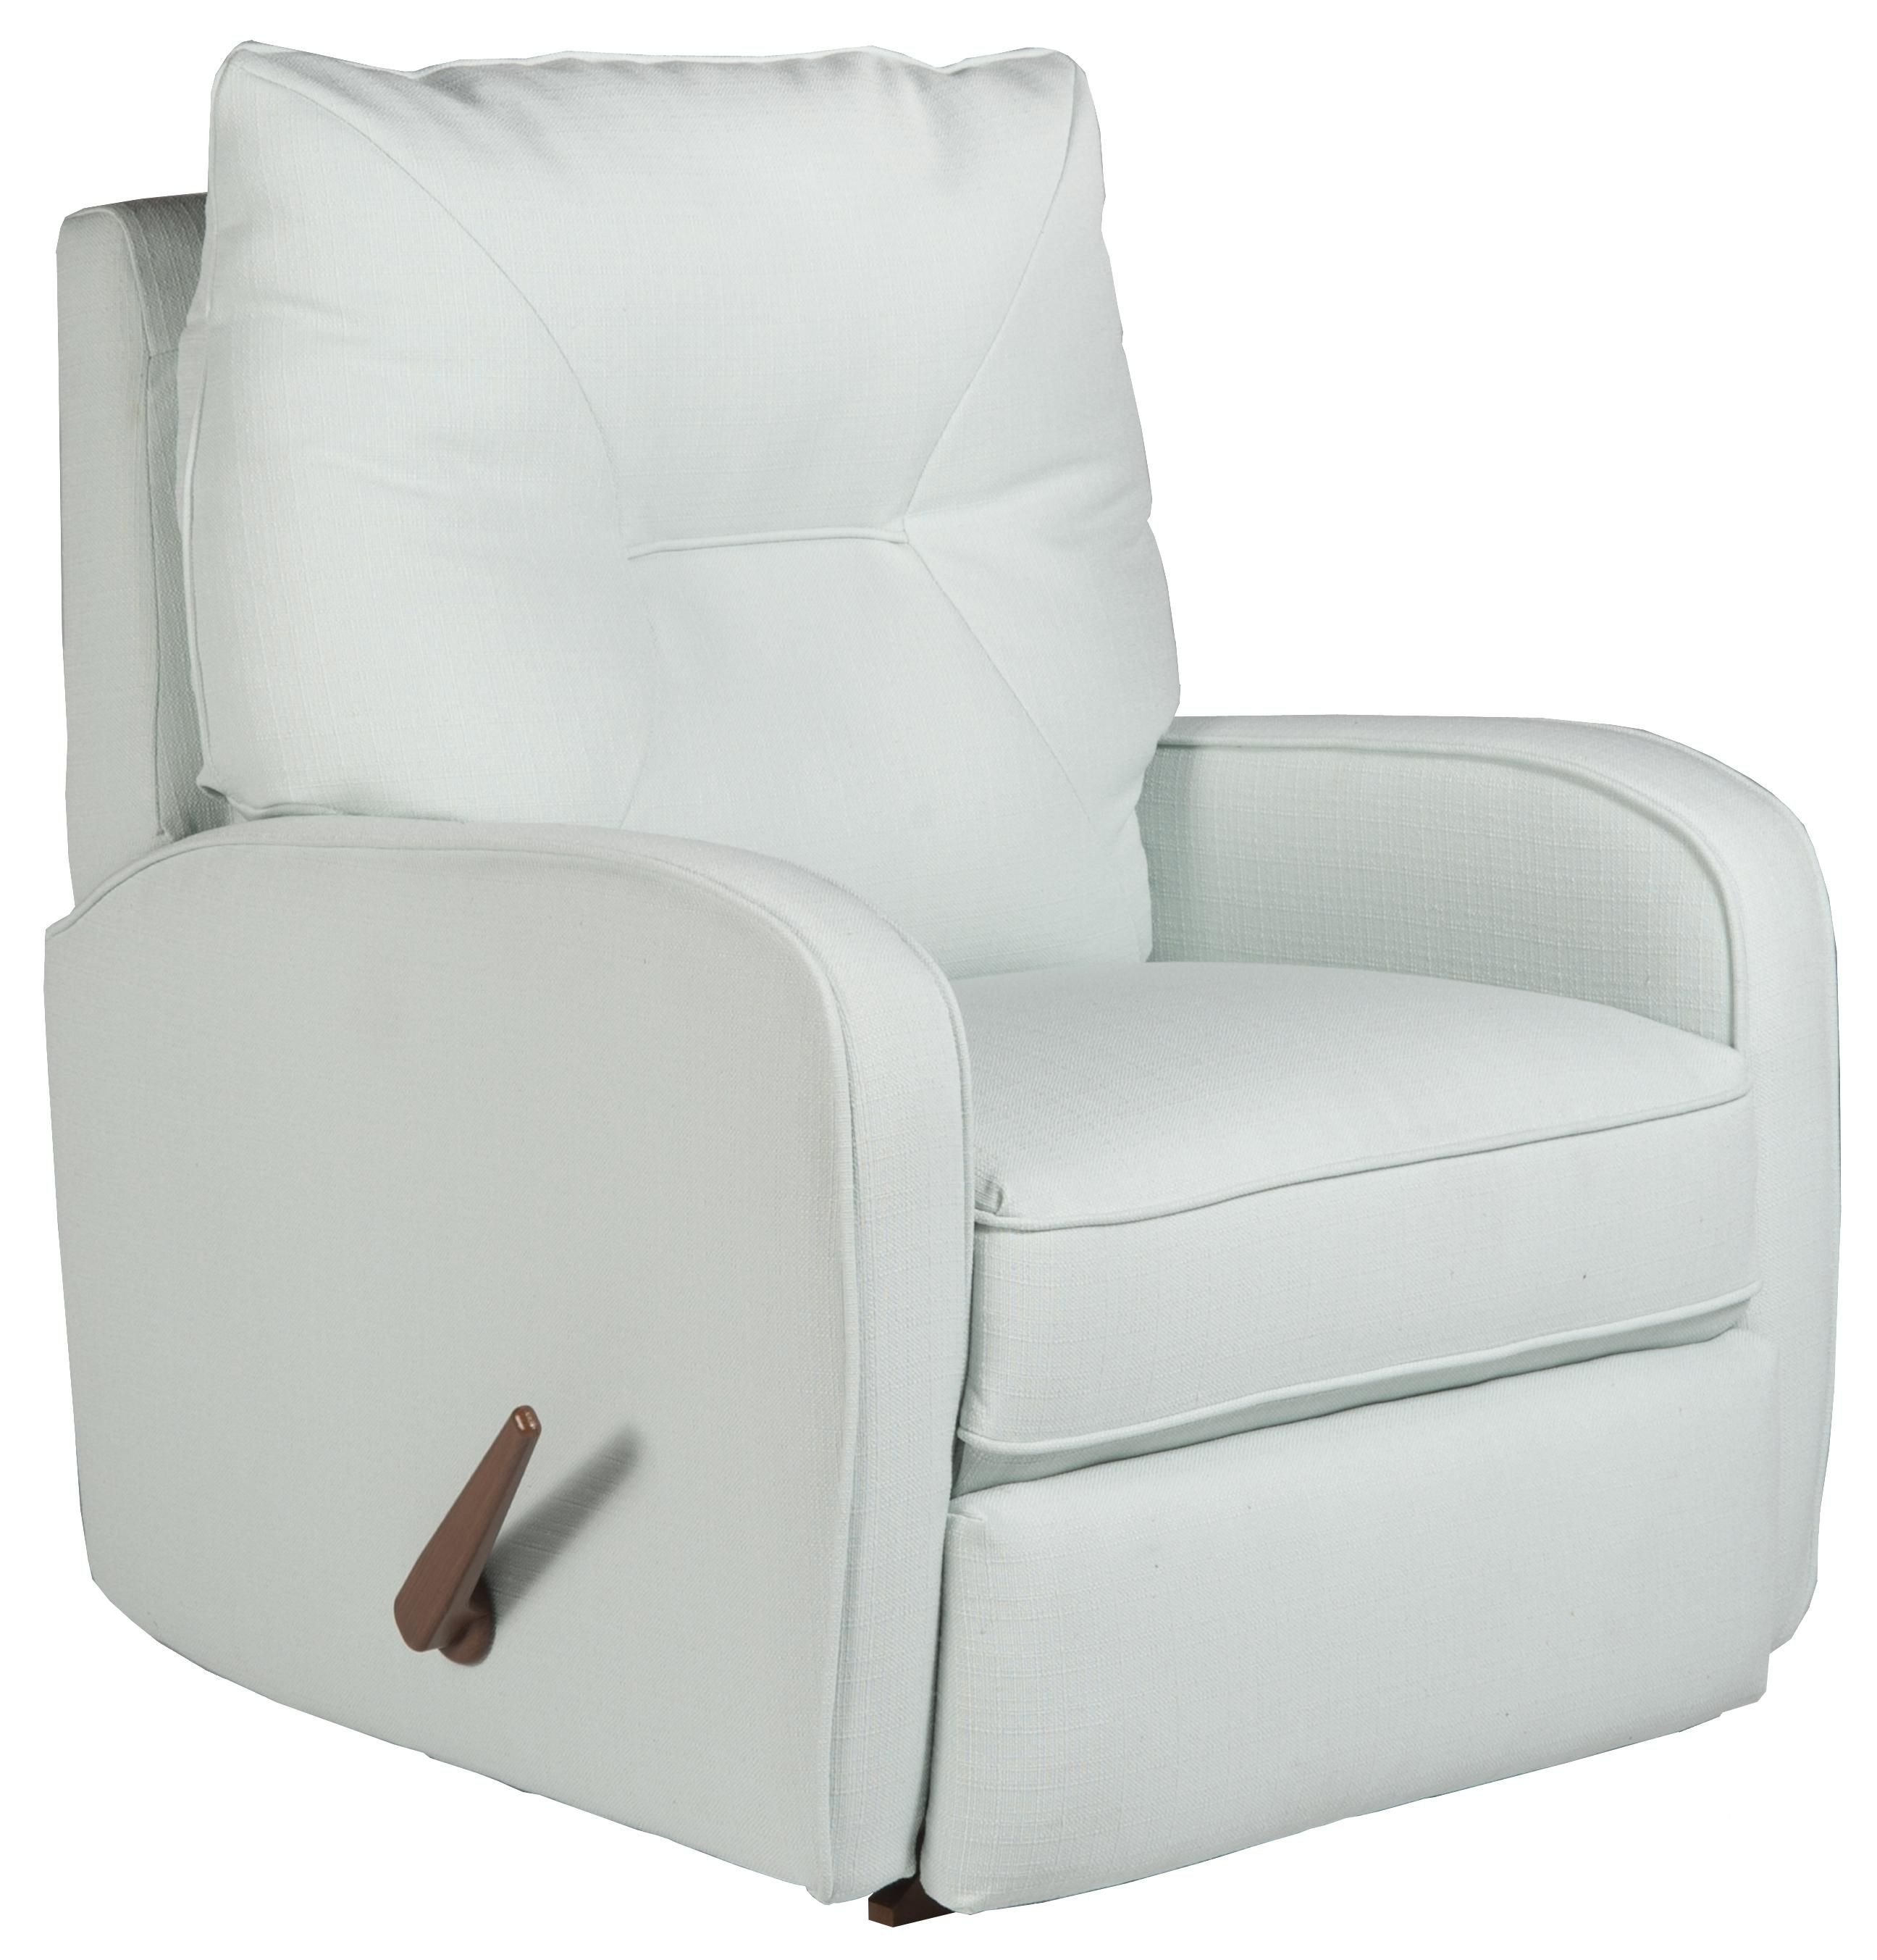 Medium Recliners Contemporary Ingall Swivel Glider Recliner In Sleek Modern Style By Best Home Furnishings At Jacksonville Furniture Mart Furniture Goods Home Furnishings Modern Recliner